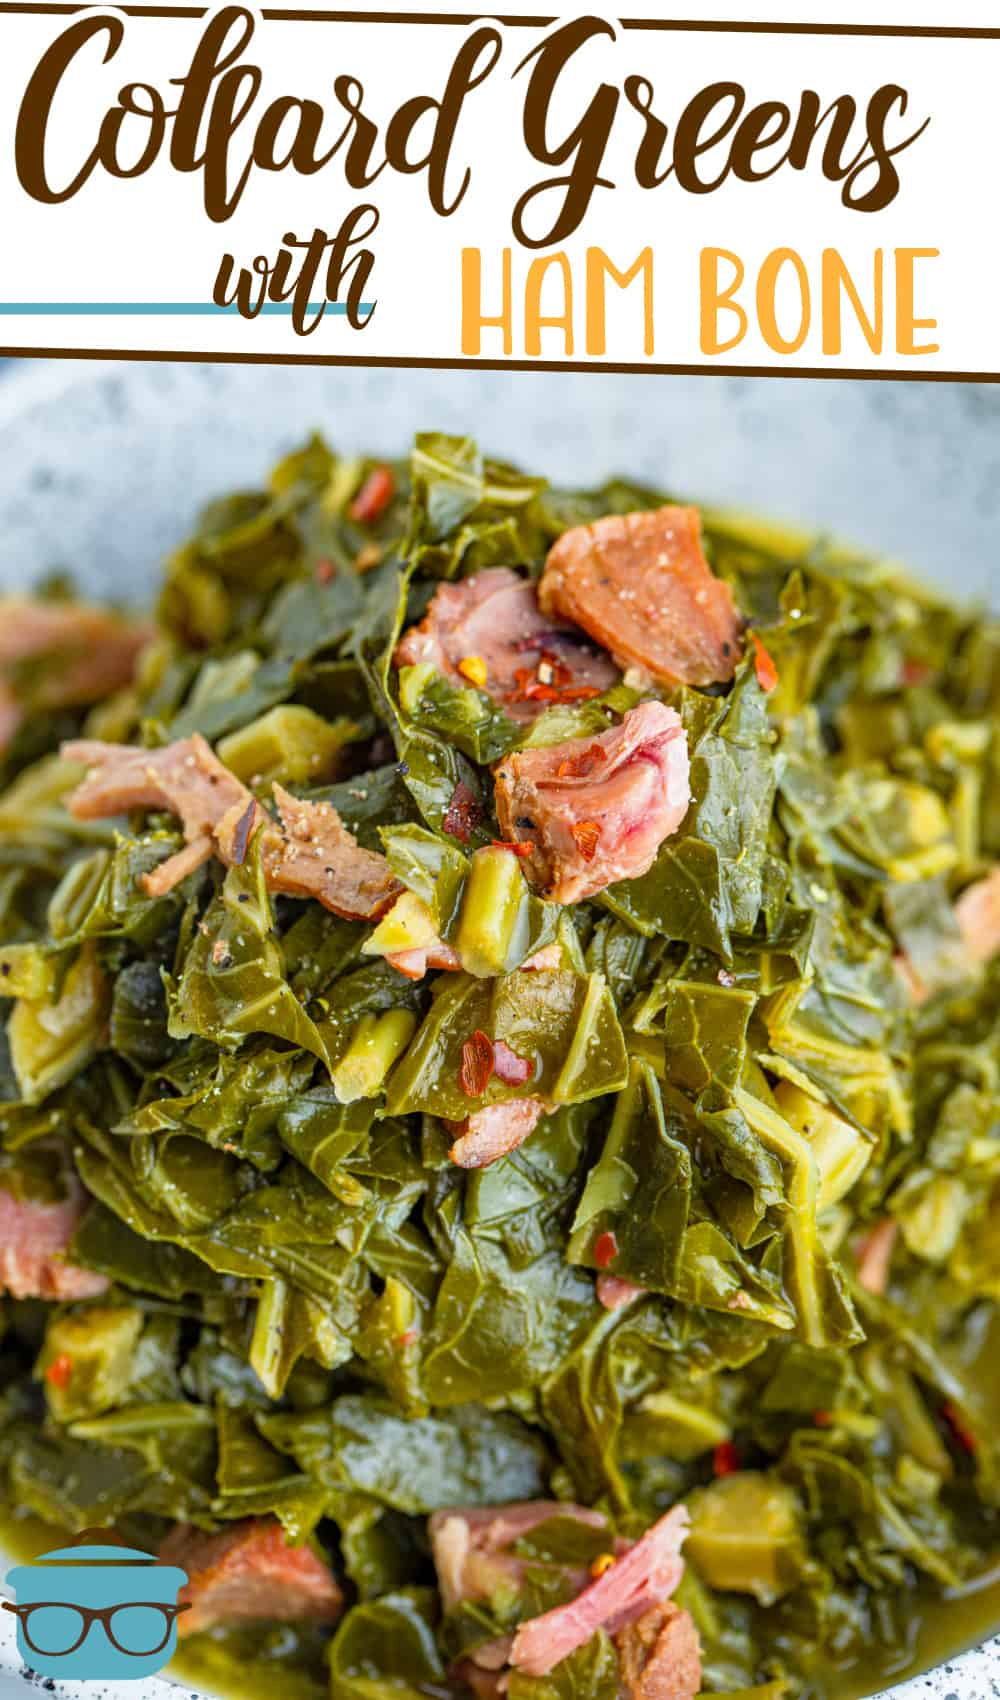 This Collard Greens with Ham Bone recipe is a classic southern side dish that is so simple to make and works great with leftover ham.